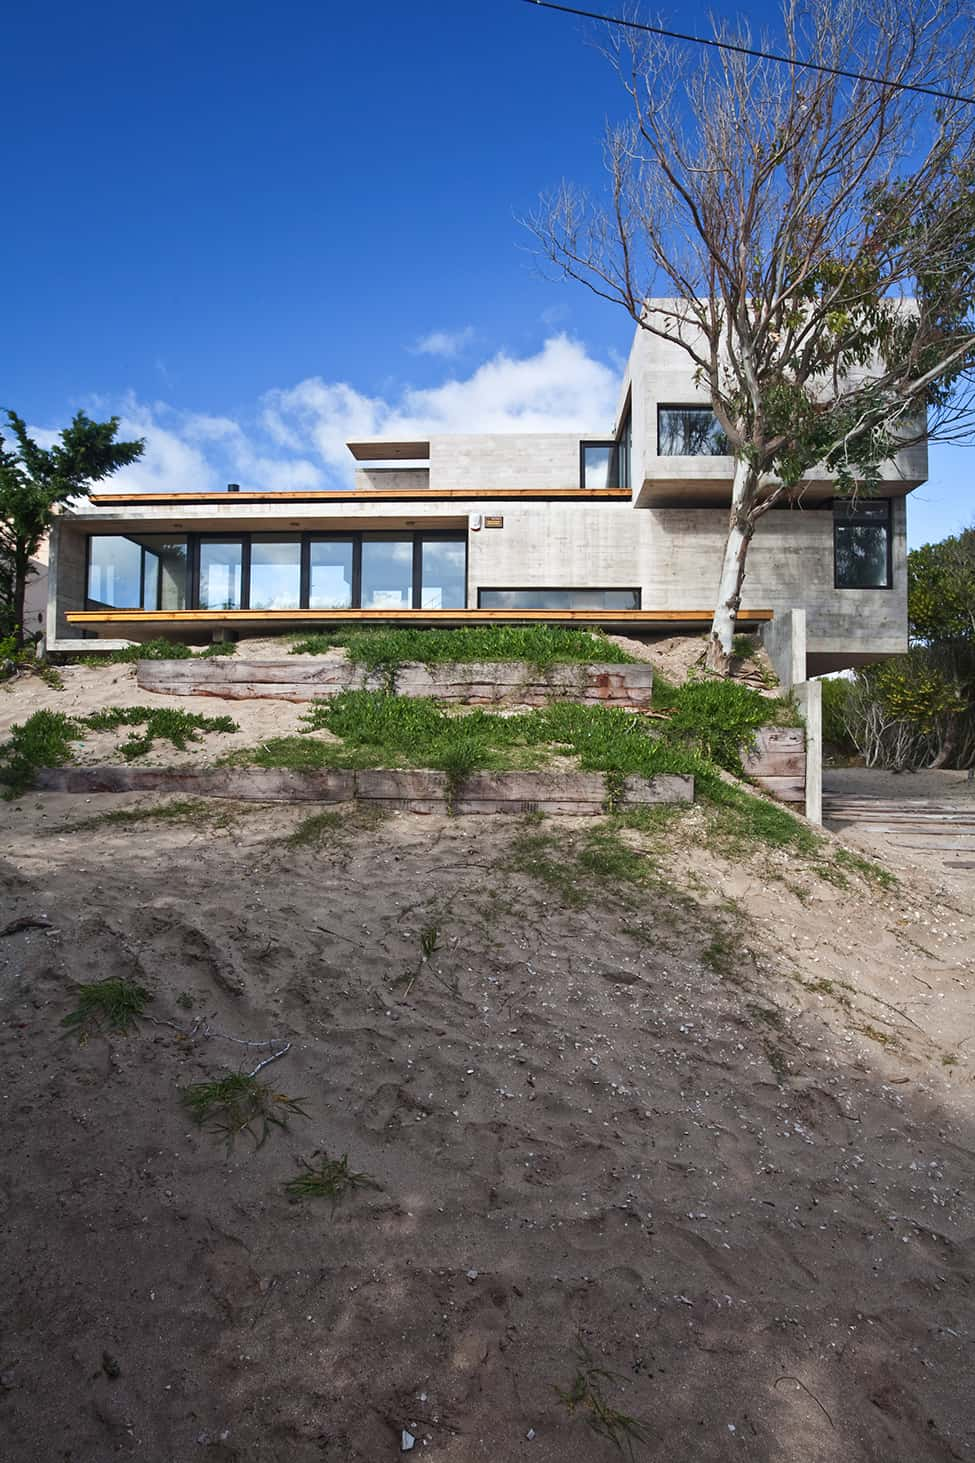 Industrial Aesthetic Values in a Beach Home by BAK Architects (26)